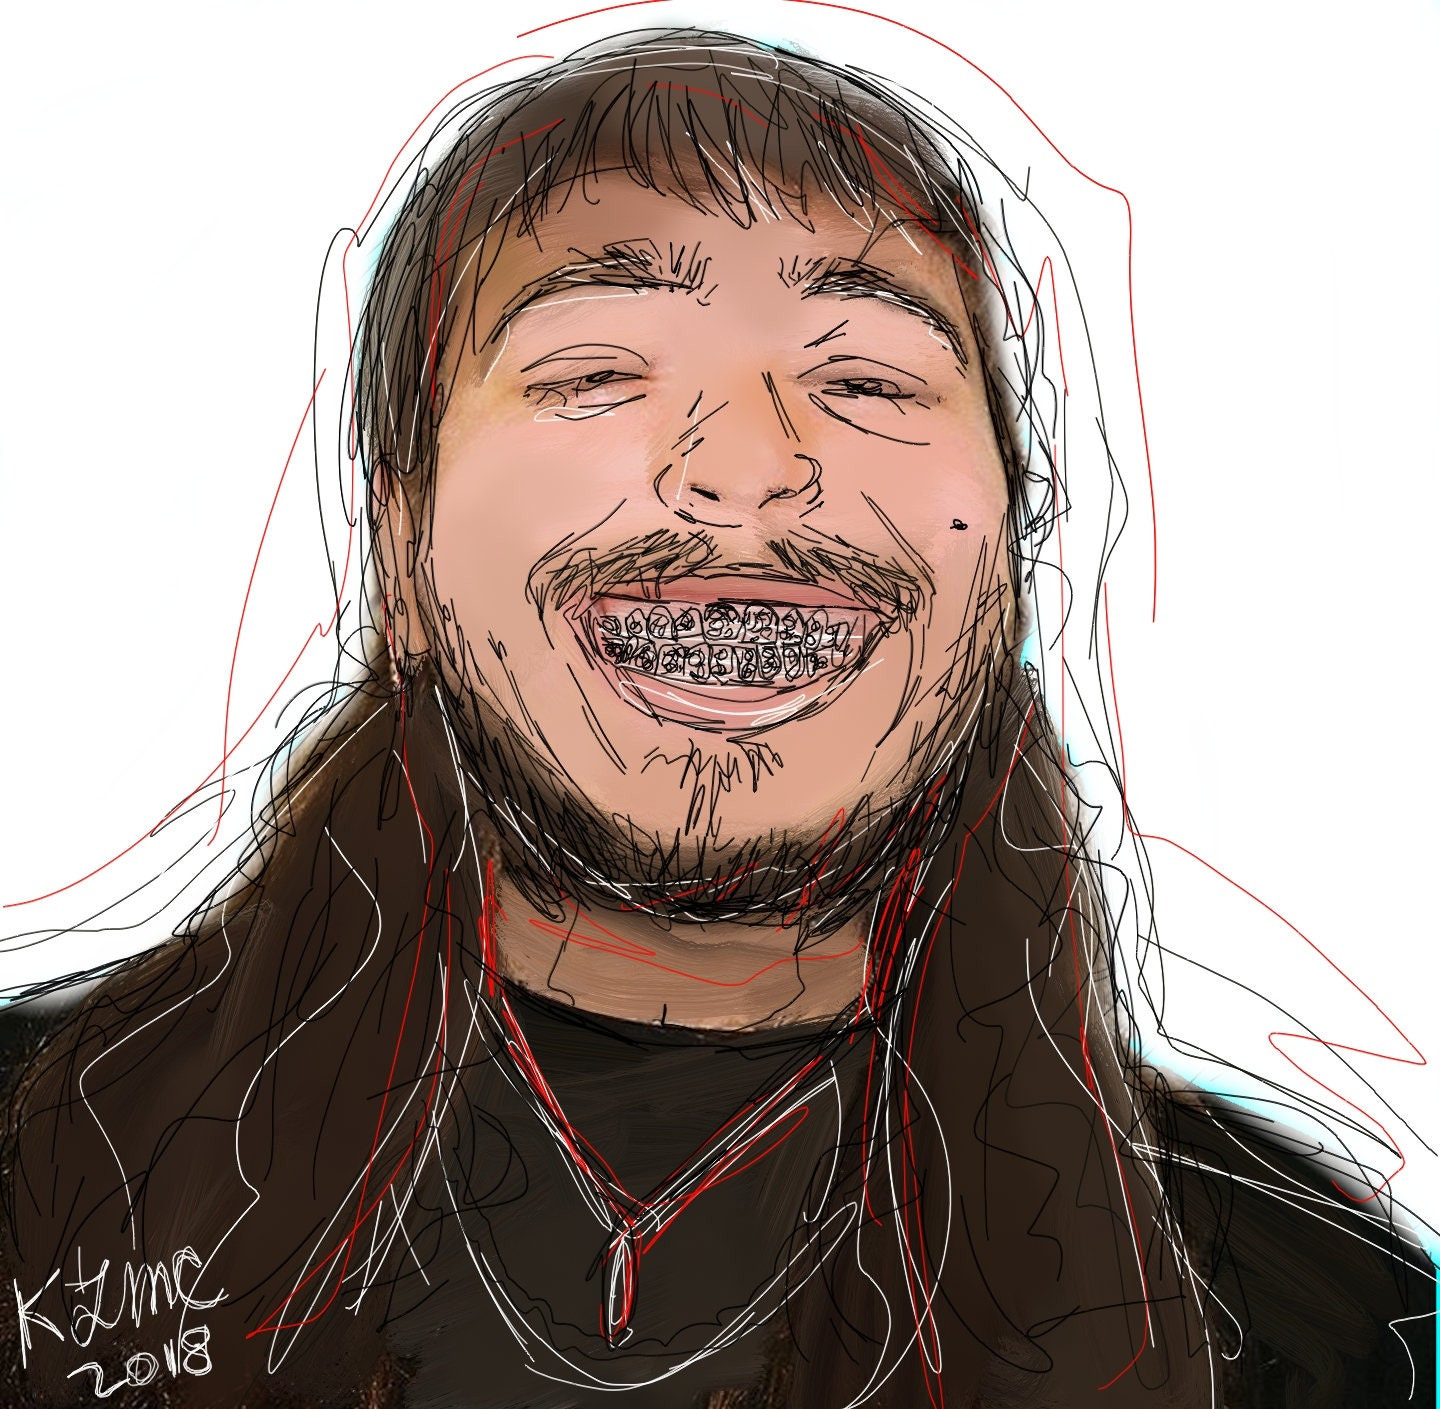 Post Malone Drawing: Post Malone Art Post Malone Painting Posty Art Digital Art